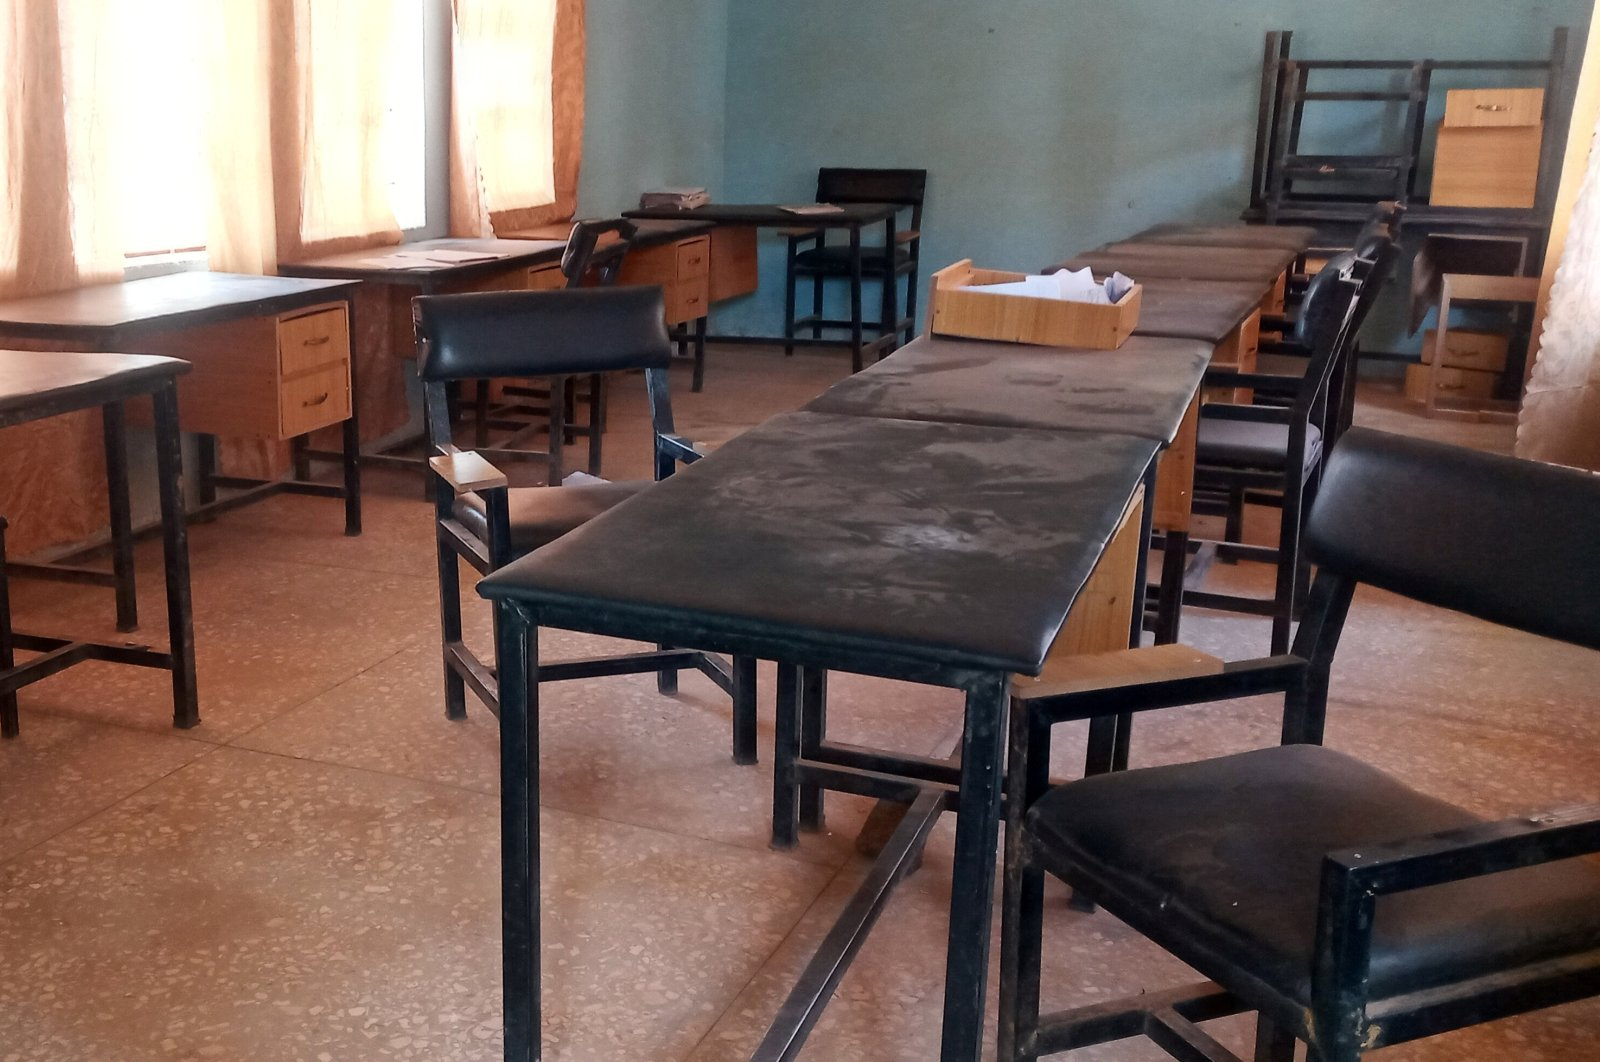 A classroom at the Government Science secondary school in Kankara district remains empty after an attack by armed bandits, in northwestern Katsina State, Nigeria, Dec. 12, 2020. (Reuters Photo)